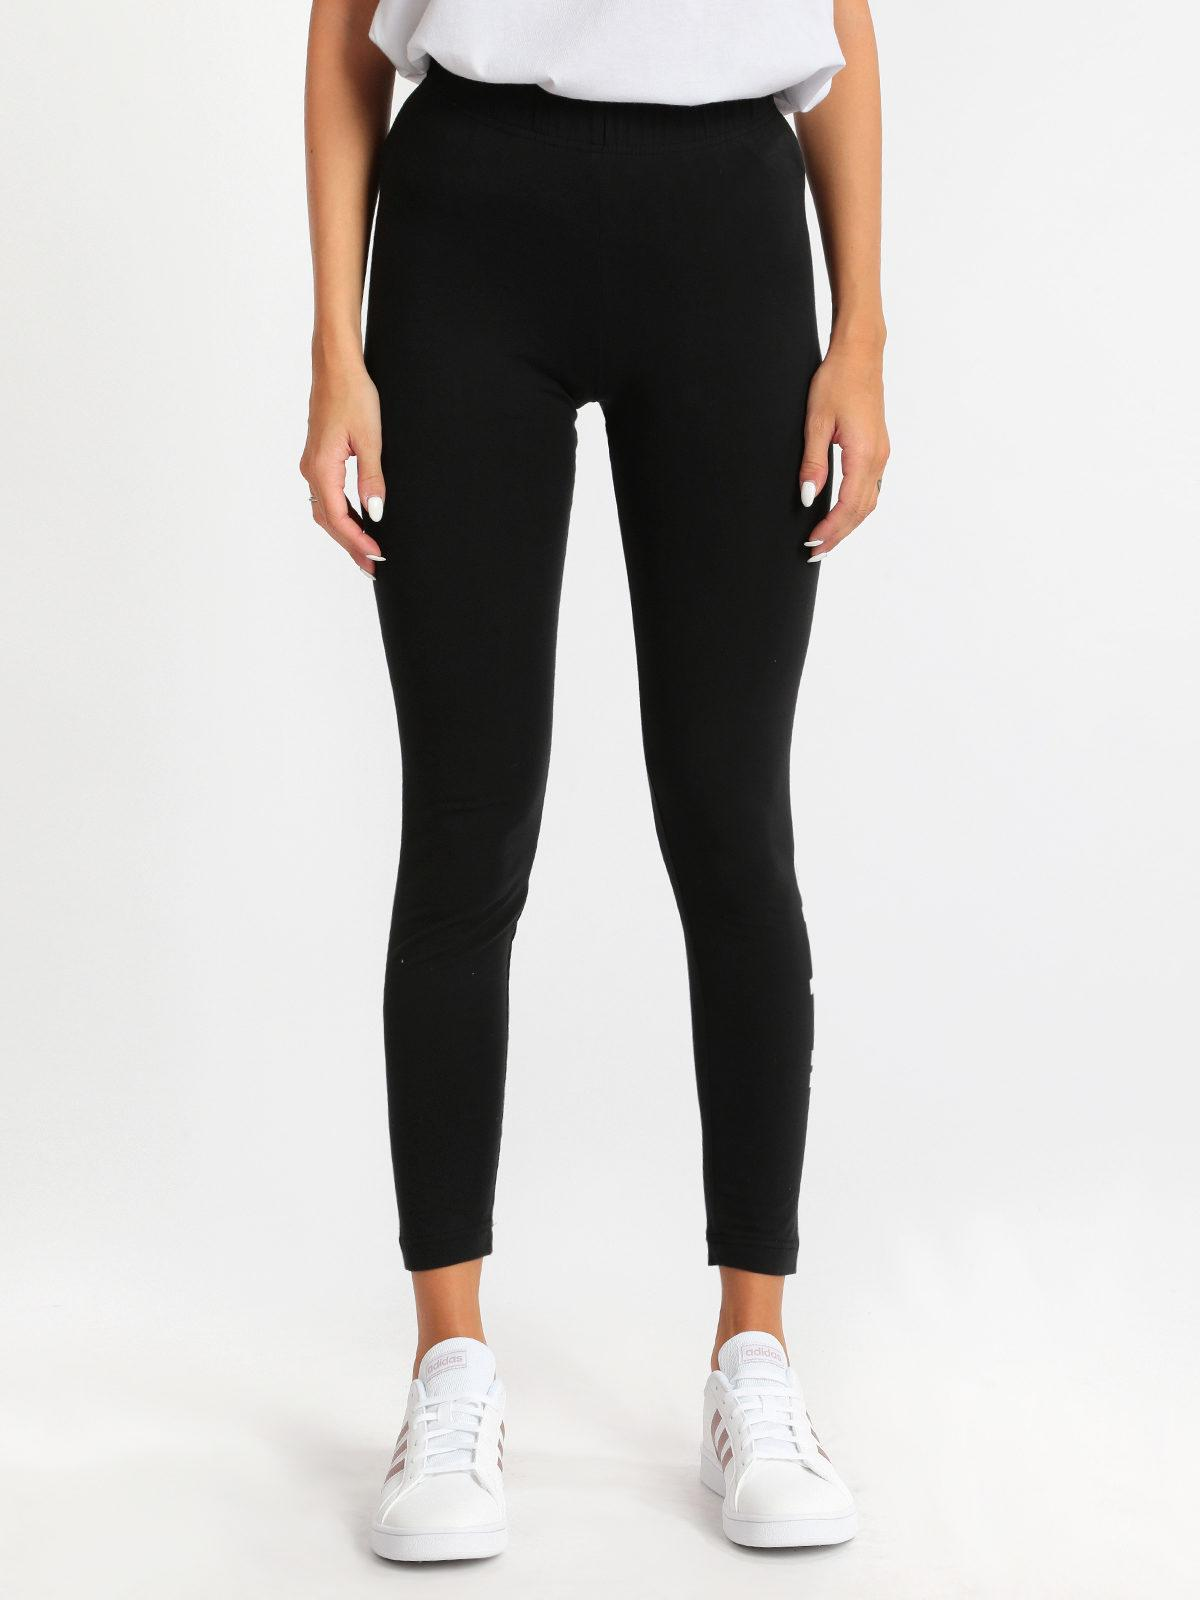 leggings adidas bimba